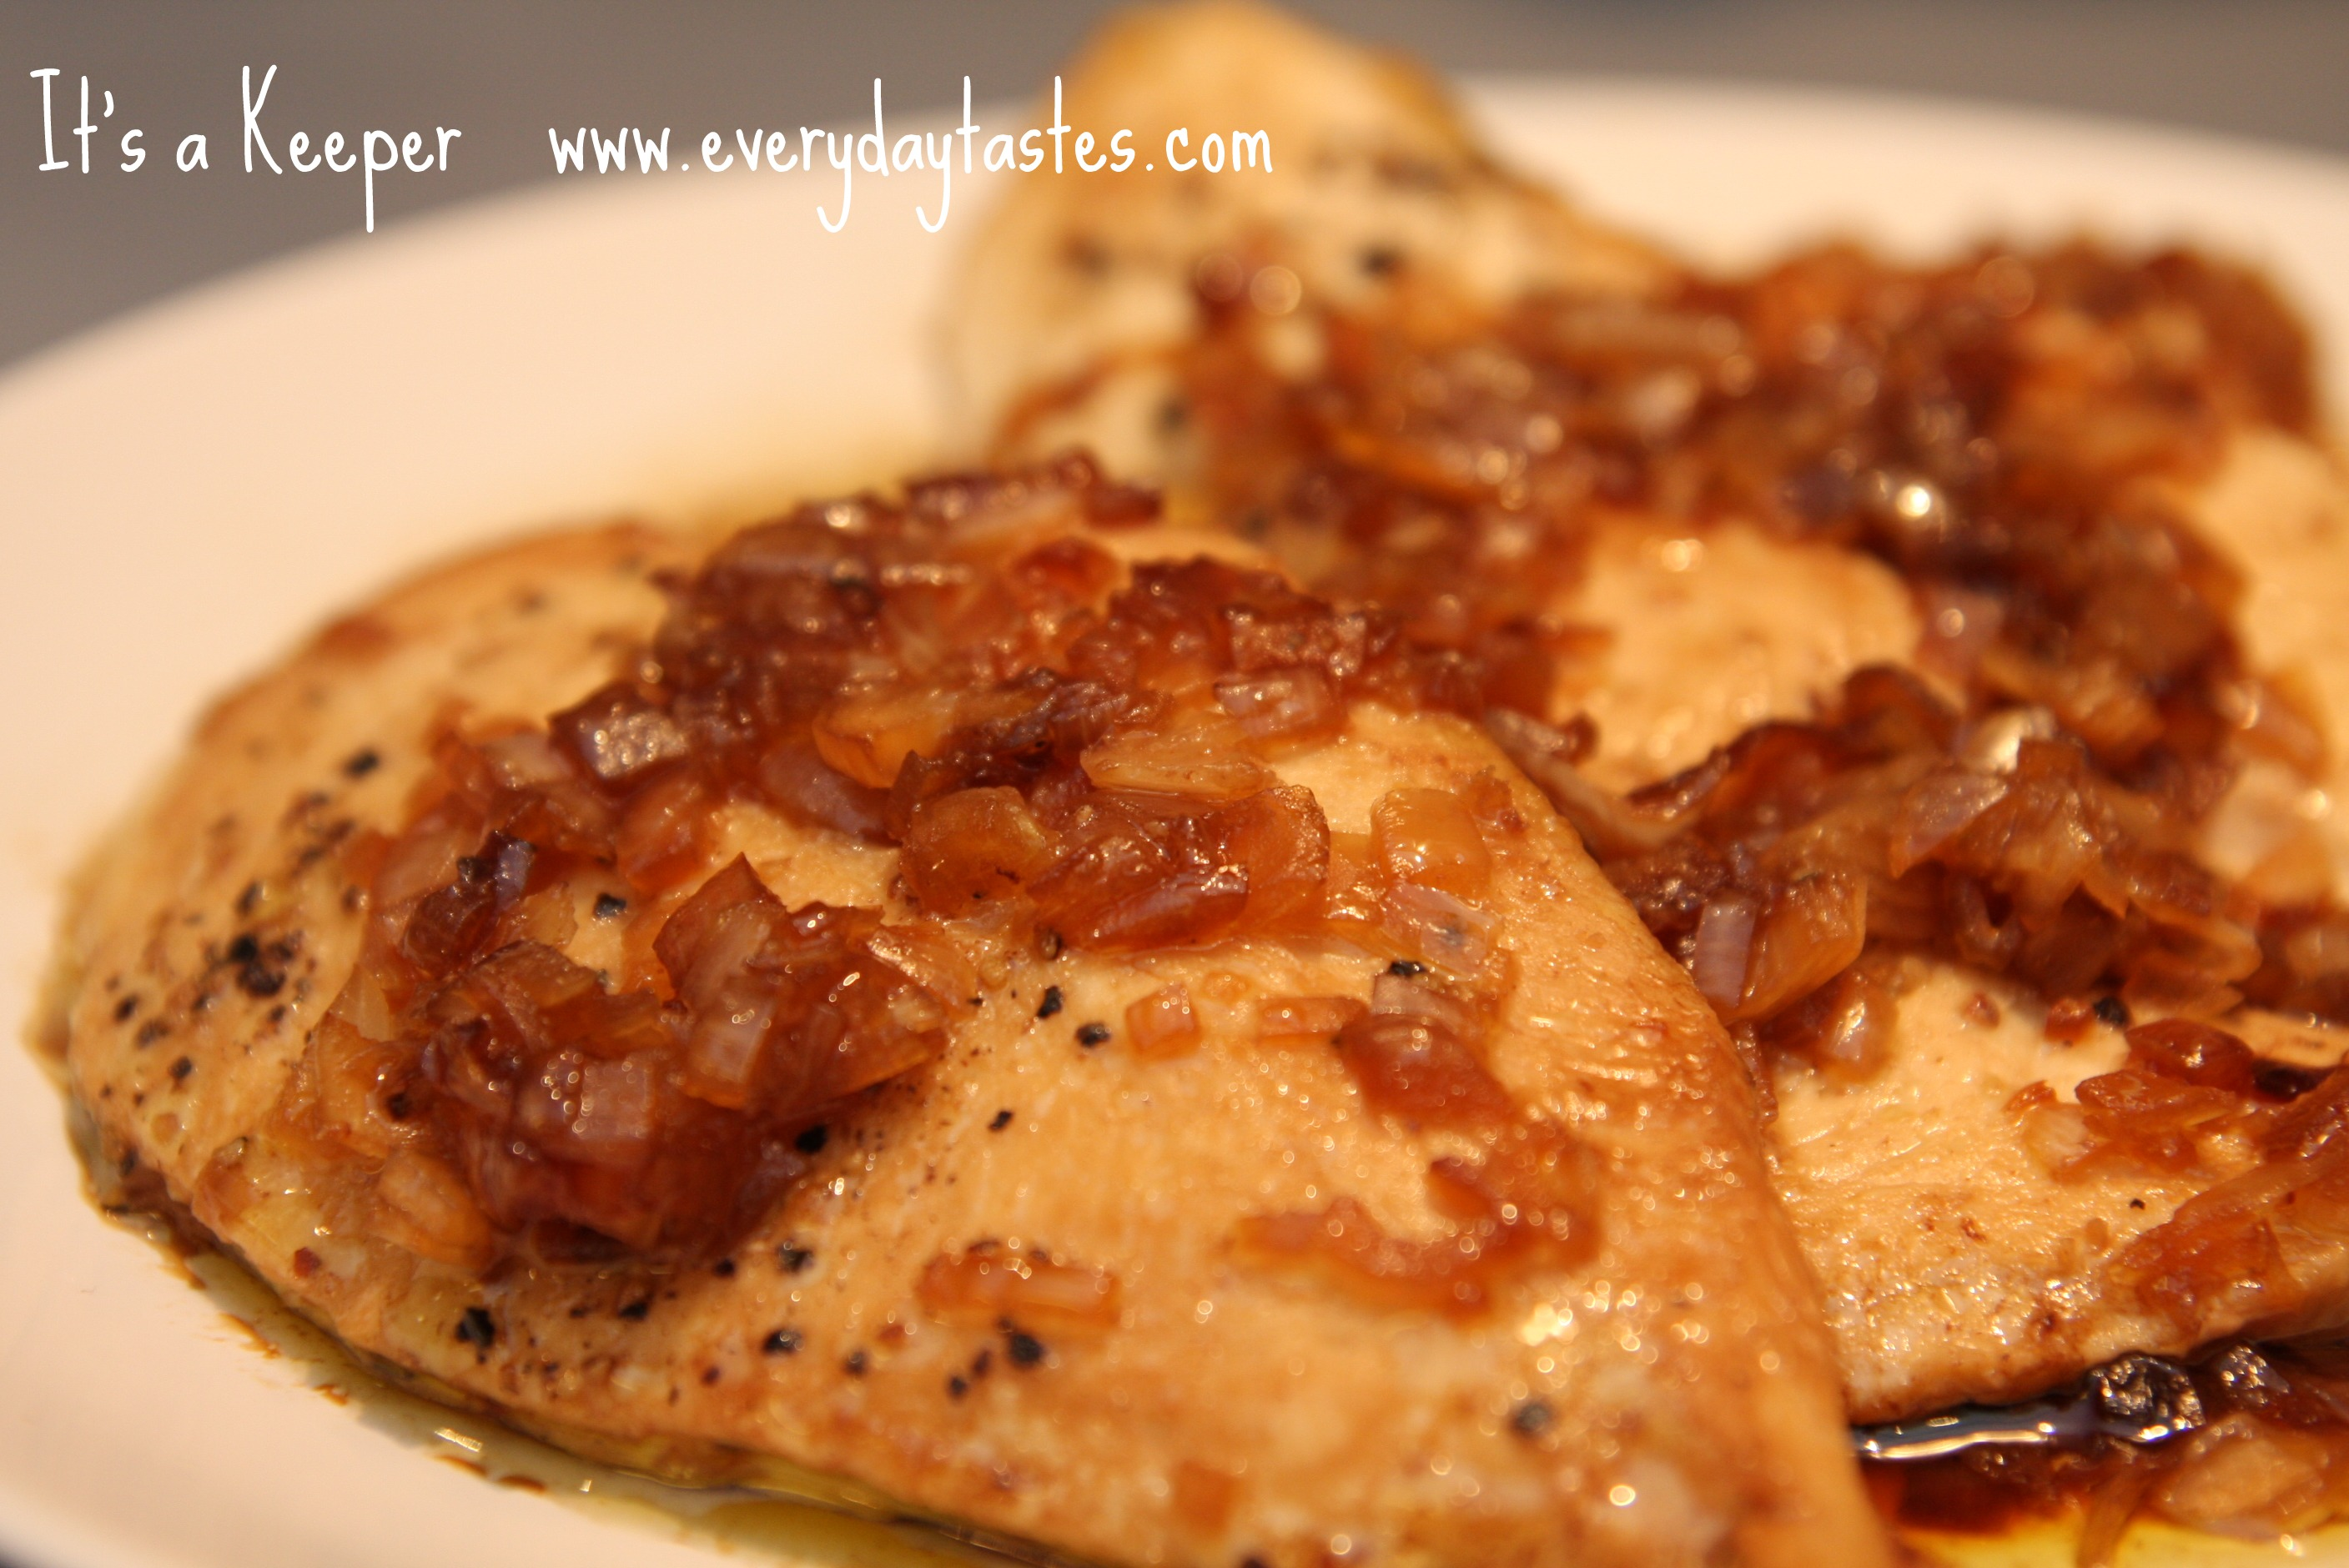 Roast Chicken with Carmelized Shallots